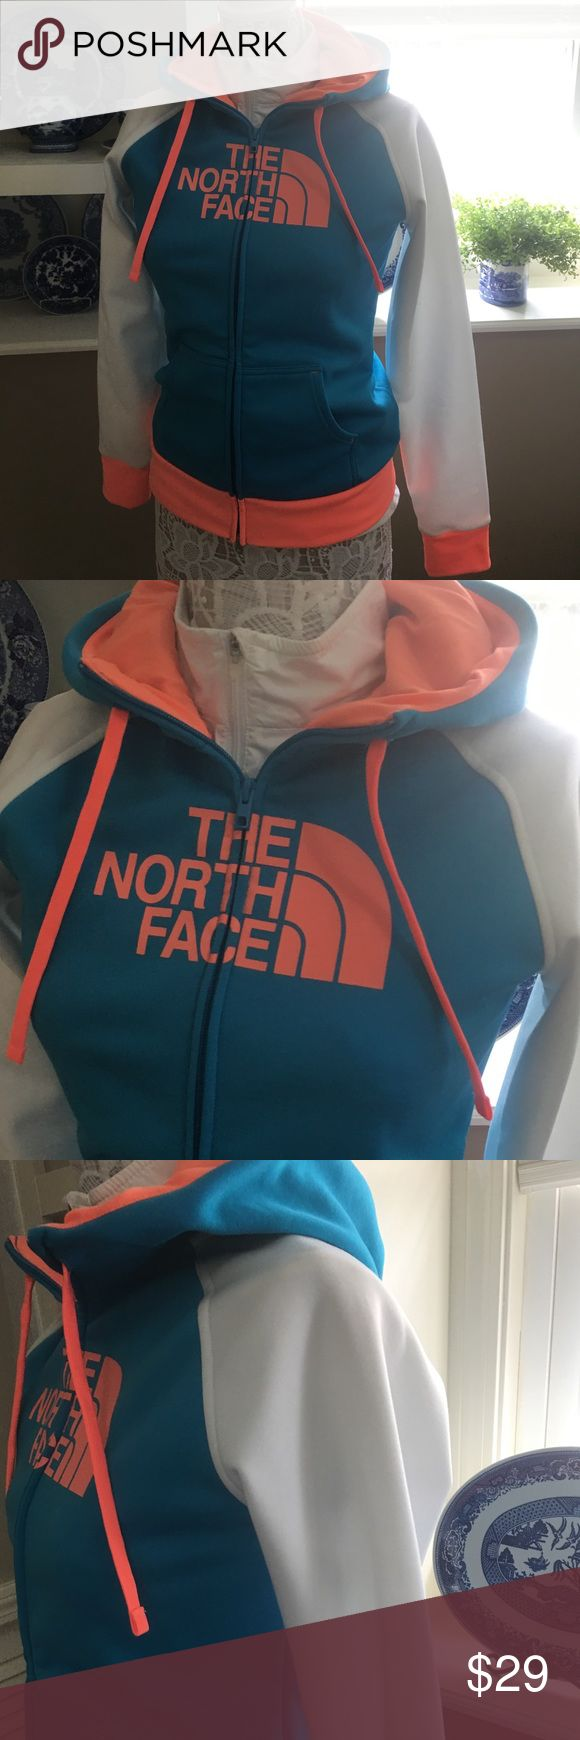 """The NORTH FACE Fleece Lined ZIP UP HOODIE This hoodie is an awesome performance piece and is always a show stopper! The few times I have worn it, I get a lot of compliments 😊 The neon colors against the white really make it pop! In EUC. Approximately 24""""L, 25"""" sleeves, zips to neck and includes drawstring at neck as well, functional front pockets and a lined hood. Comes from a smoke free home 🏡 Bundle & save! The North Face Tops Sweatshirts & Hoodies"""